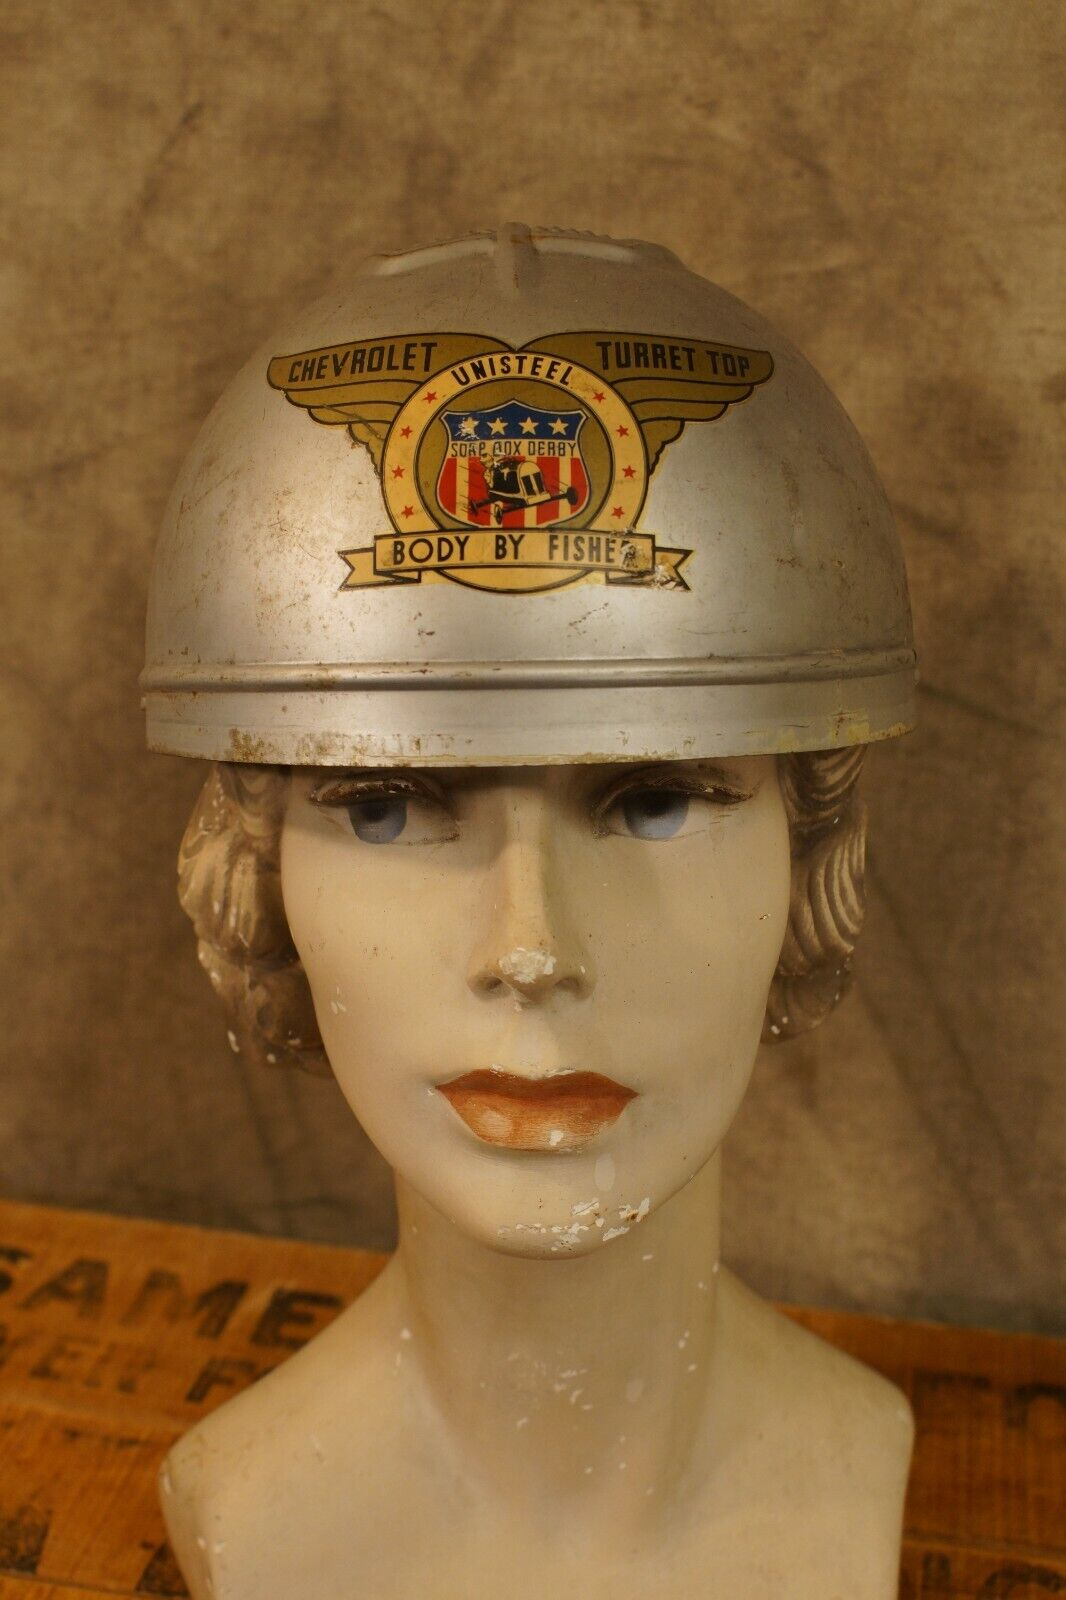 1930's Chevrolet Turret Top Soap Box Derby Helmet Body by Fisher